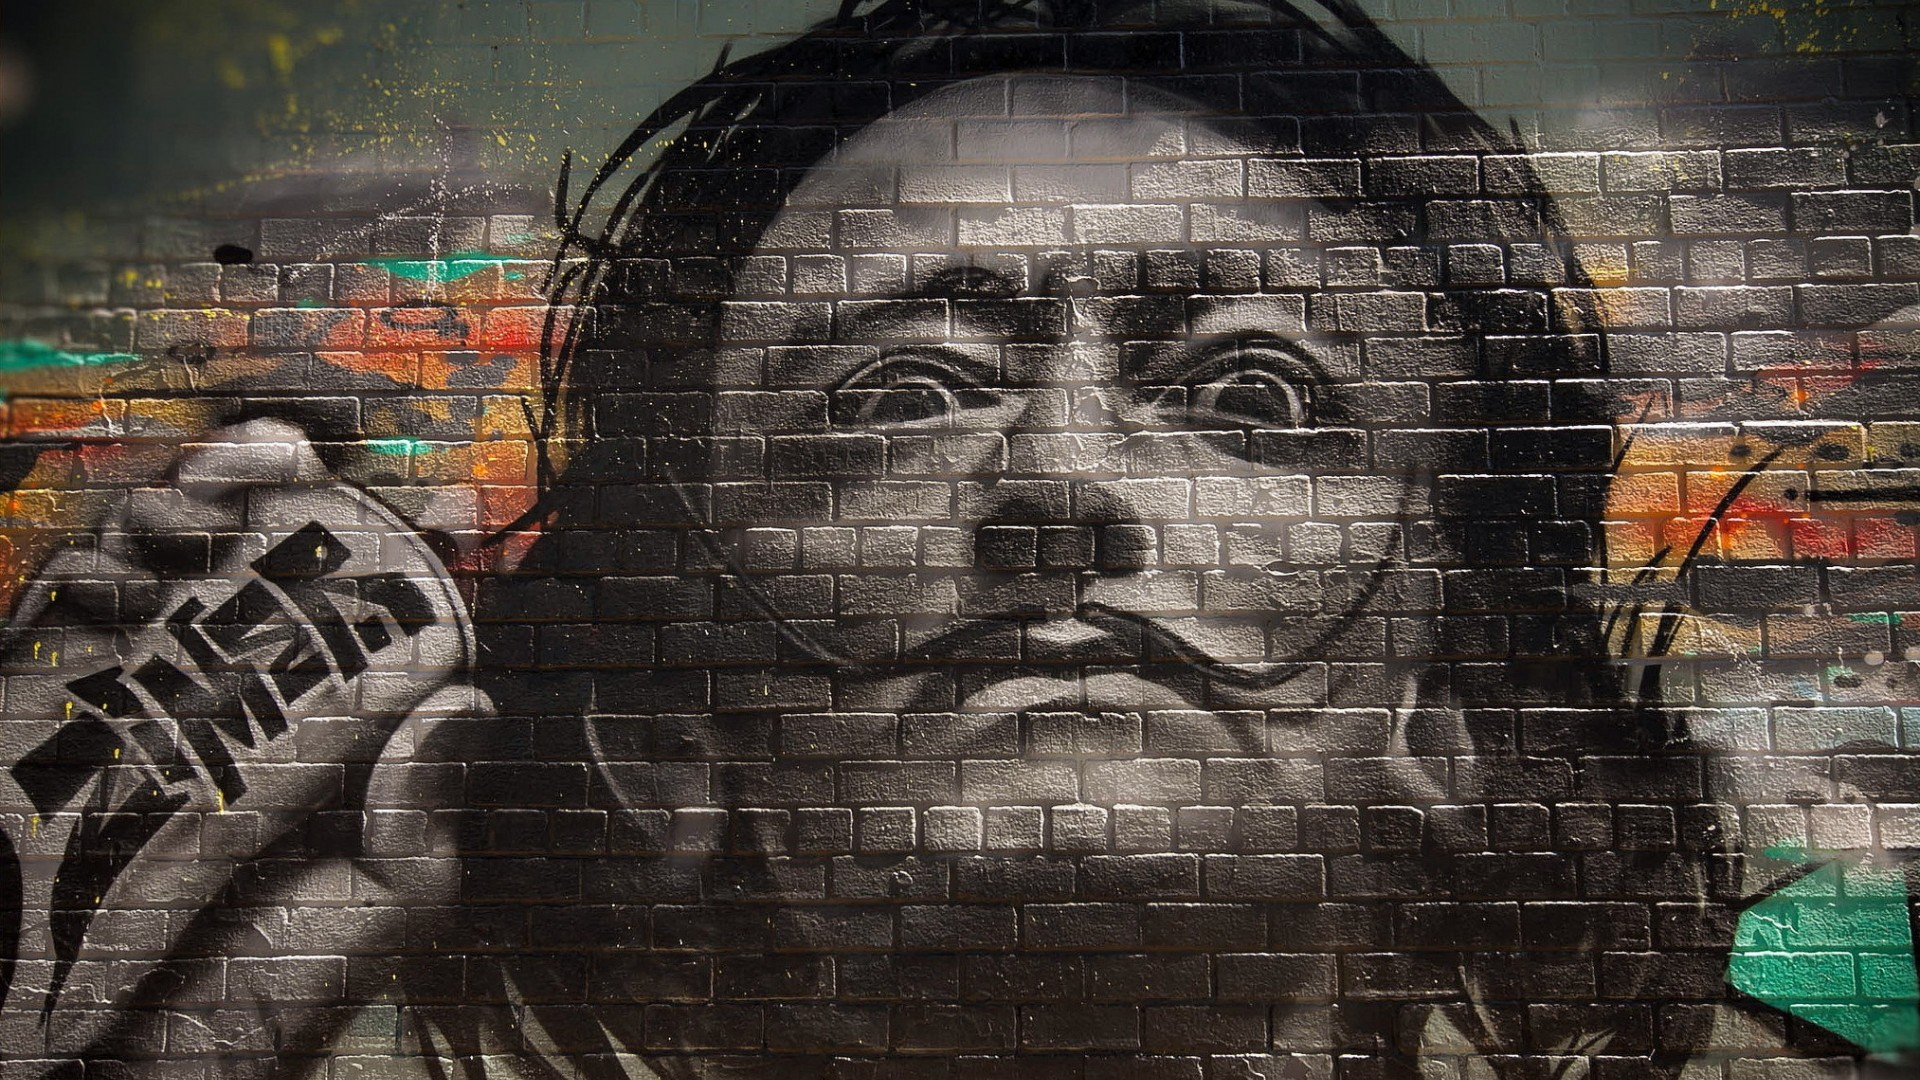 graffiti_of_salvador_dali